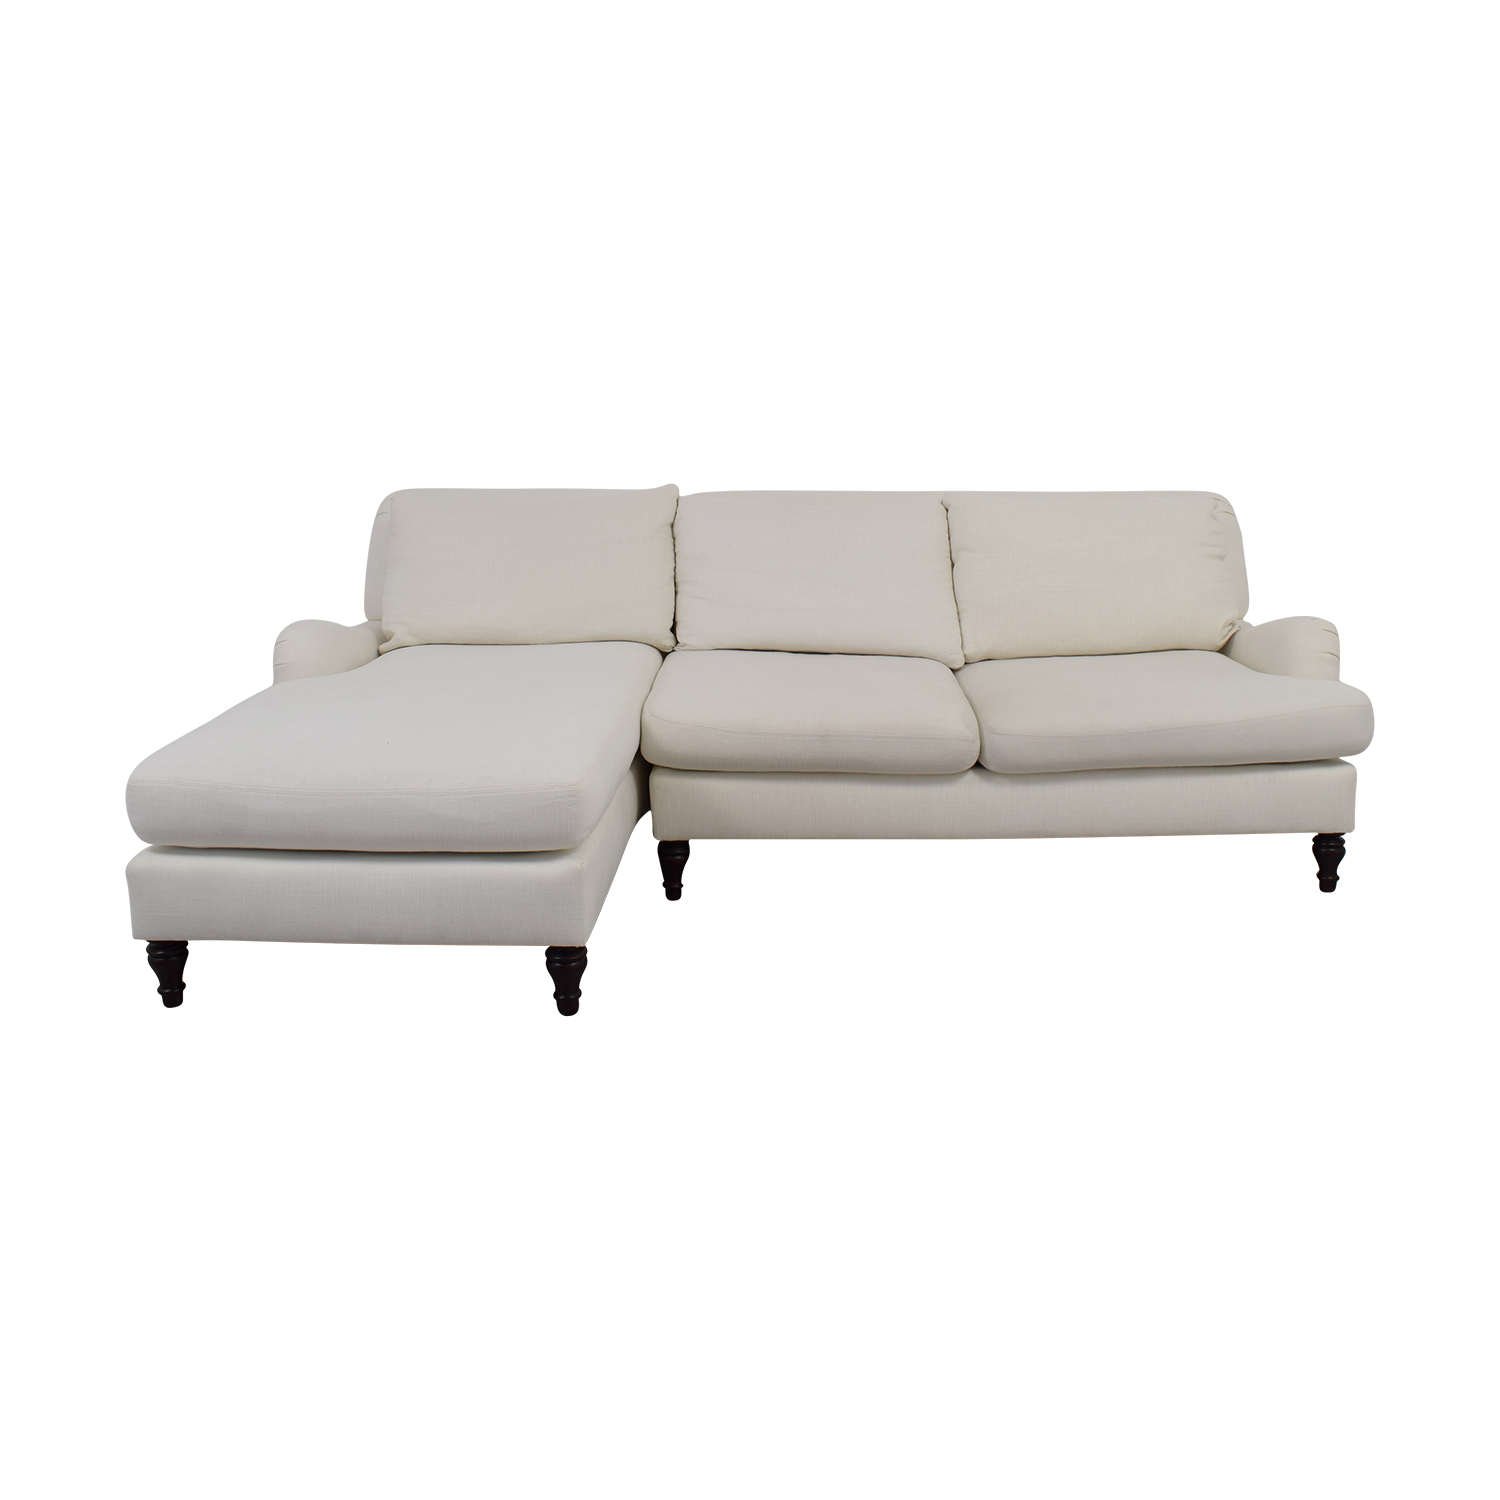 pottery barn chaise sofa sectional john peters sofas hull 79 off carlisle white